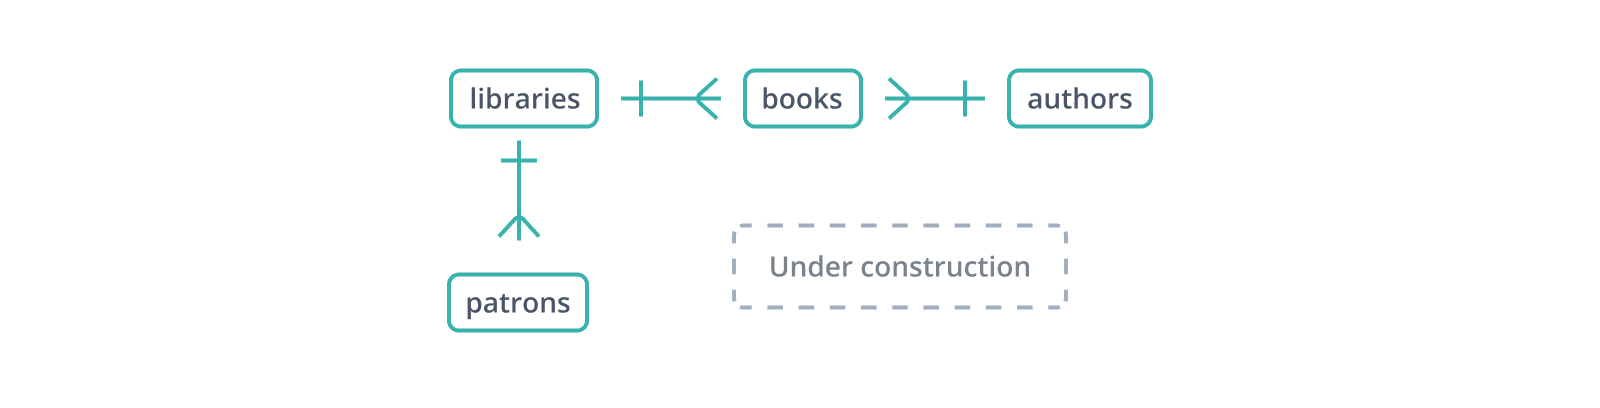 The first steps toward a database schema design for tracking books and patrons in a library system.